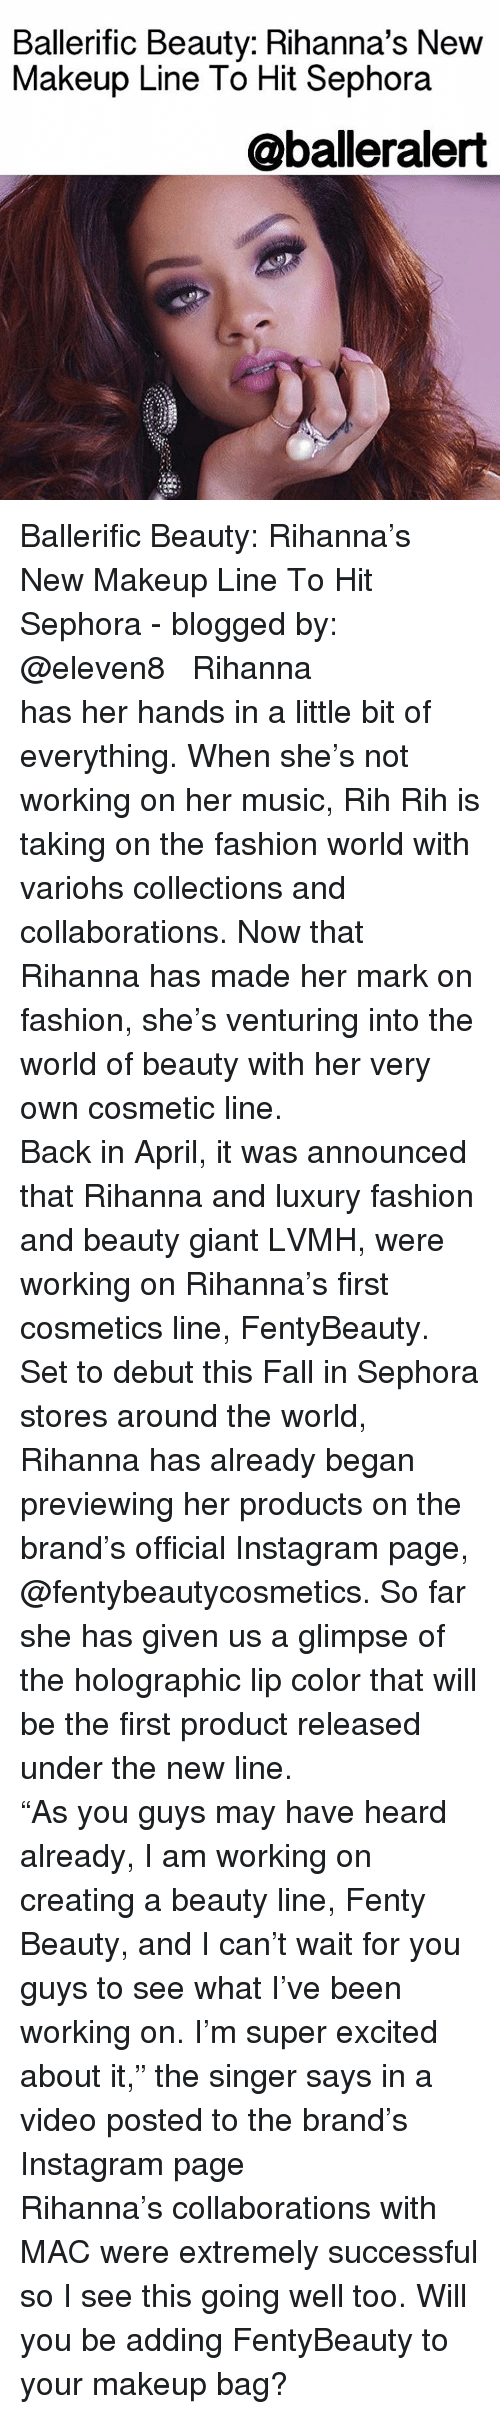 "Excitment: Ballerific Beauty: Rihanna's New  Makeup Line To Hit Sephora  @balleralert Ballerific Beauty: Rihanna's New Makeup Line To Hit Sephora - blogged by: @eleven8 ⠀⠀⠀⠀⠀⠀⠀⠀⠀ ⠀⠀⠀⠀⠀⠀⠀⠀⠀ Rihanna has her hands in a little bit of everything. When she's not working on her music, Rih Rih is taking on the fashion world with variohs collections and collaborations. Now that Rihanna has made her mark on fashion, she's venturing into the world of beauty with her very own cosmetic line. ⠀⠀⠀⠀⠀⠀⠀⠀⠀ ⠀⠀⠀⠀⠀⠀⠀⠀⠀ Back in April, it was announced that Rihanna and luxury fashion and beauty giant LVMH, were working on Rihanna's first cosmetics line, FentyBeauty. Set to debut this Fall in Sephora stores around the world, Rihanna has already began previewing her products on the brand's official Instagram page, @fentybeautycosmetics. So far she has given us a glimpse of the holographic lip color that will be the first product released under the new line. ⠀⠀⠀⠀⠀⠀⠀⠀⠀ ⠀⠀⠀⠀⠀⠀⠀⠀⠀ ""As you guys may have heard already, I am working on creating a beauty line, Fenty Beauty, and I can't wait for you guys to see what I've been working on. I'm super excited about it,"" the singer says in a video posted to the brand's Instagram page ⠀⠀⠀⠀⠀⠀⠀⠀⠀ ⠀⠀⠀⠀⠀⠀⠀⠀⠀ Rihanna's collaborations with MAC were extremely successful so I see this going well too. Will you be adding FentyBeauty to your makeup bag?"